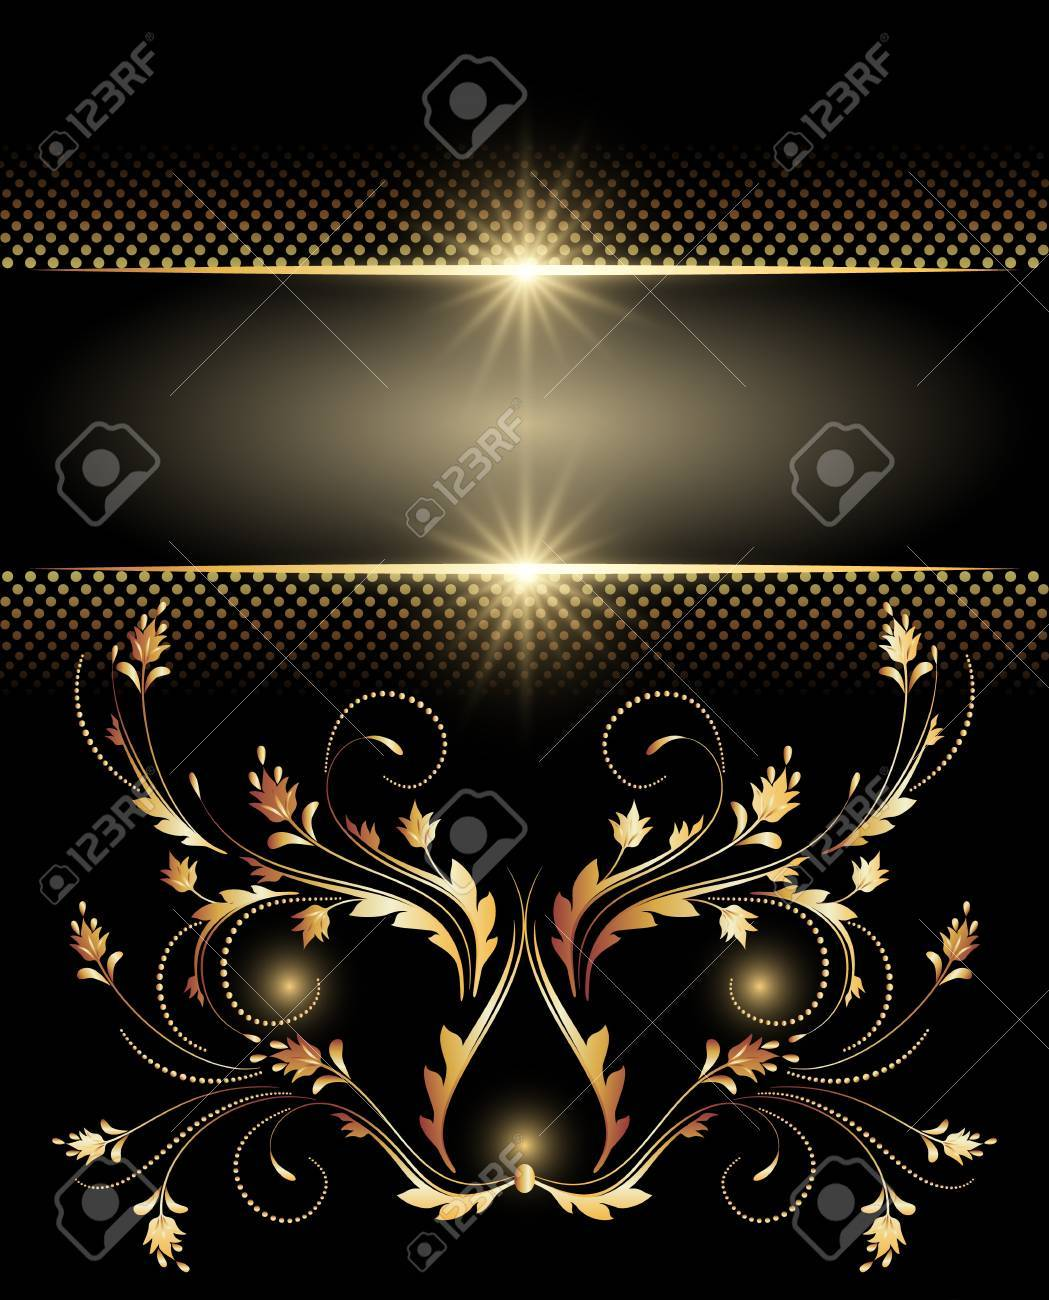 Background with glowing stars, silver ornament and smoke Stock Vector - 9810129